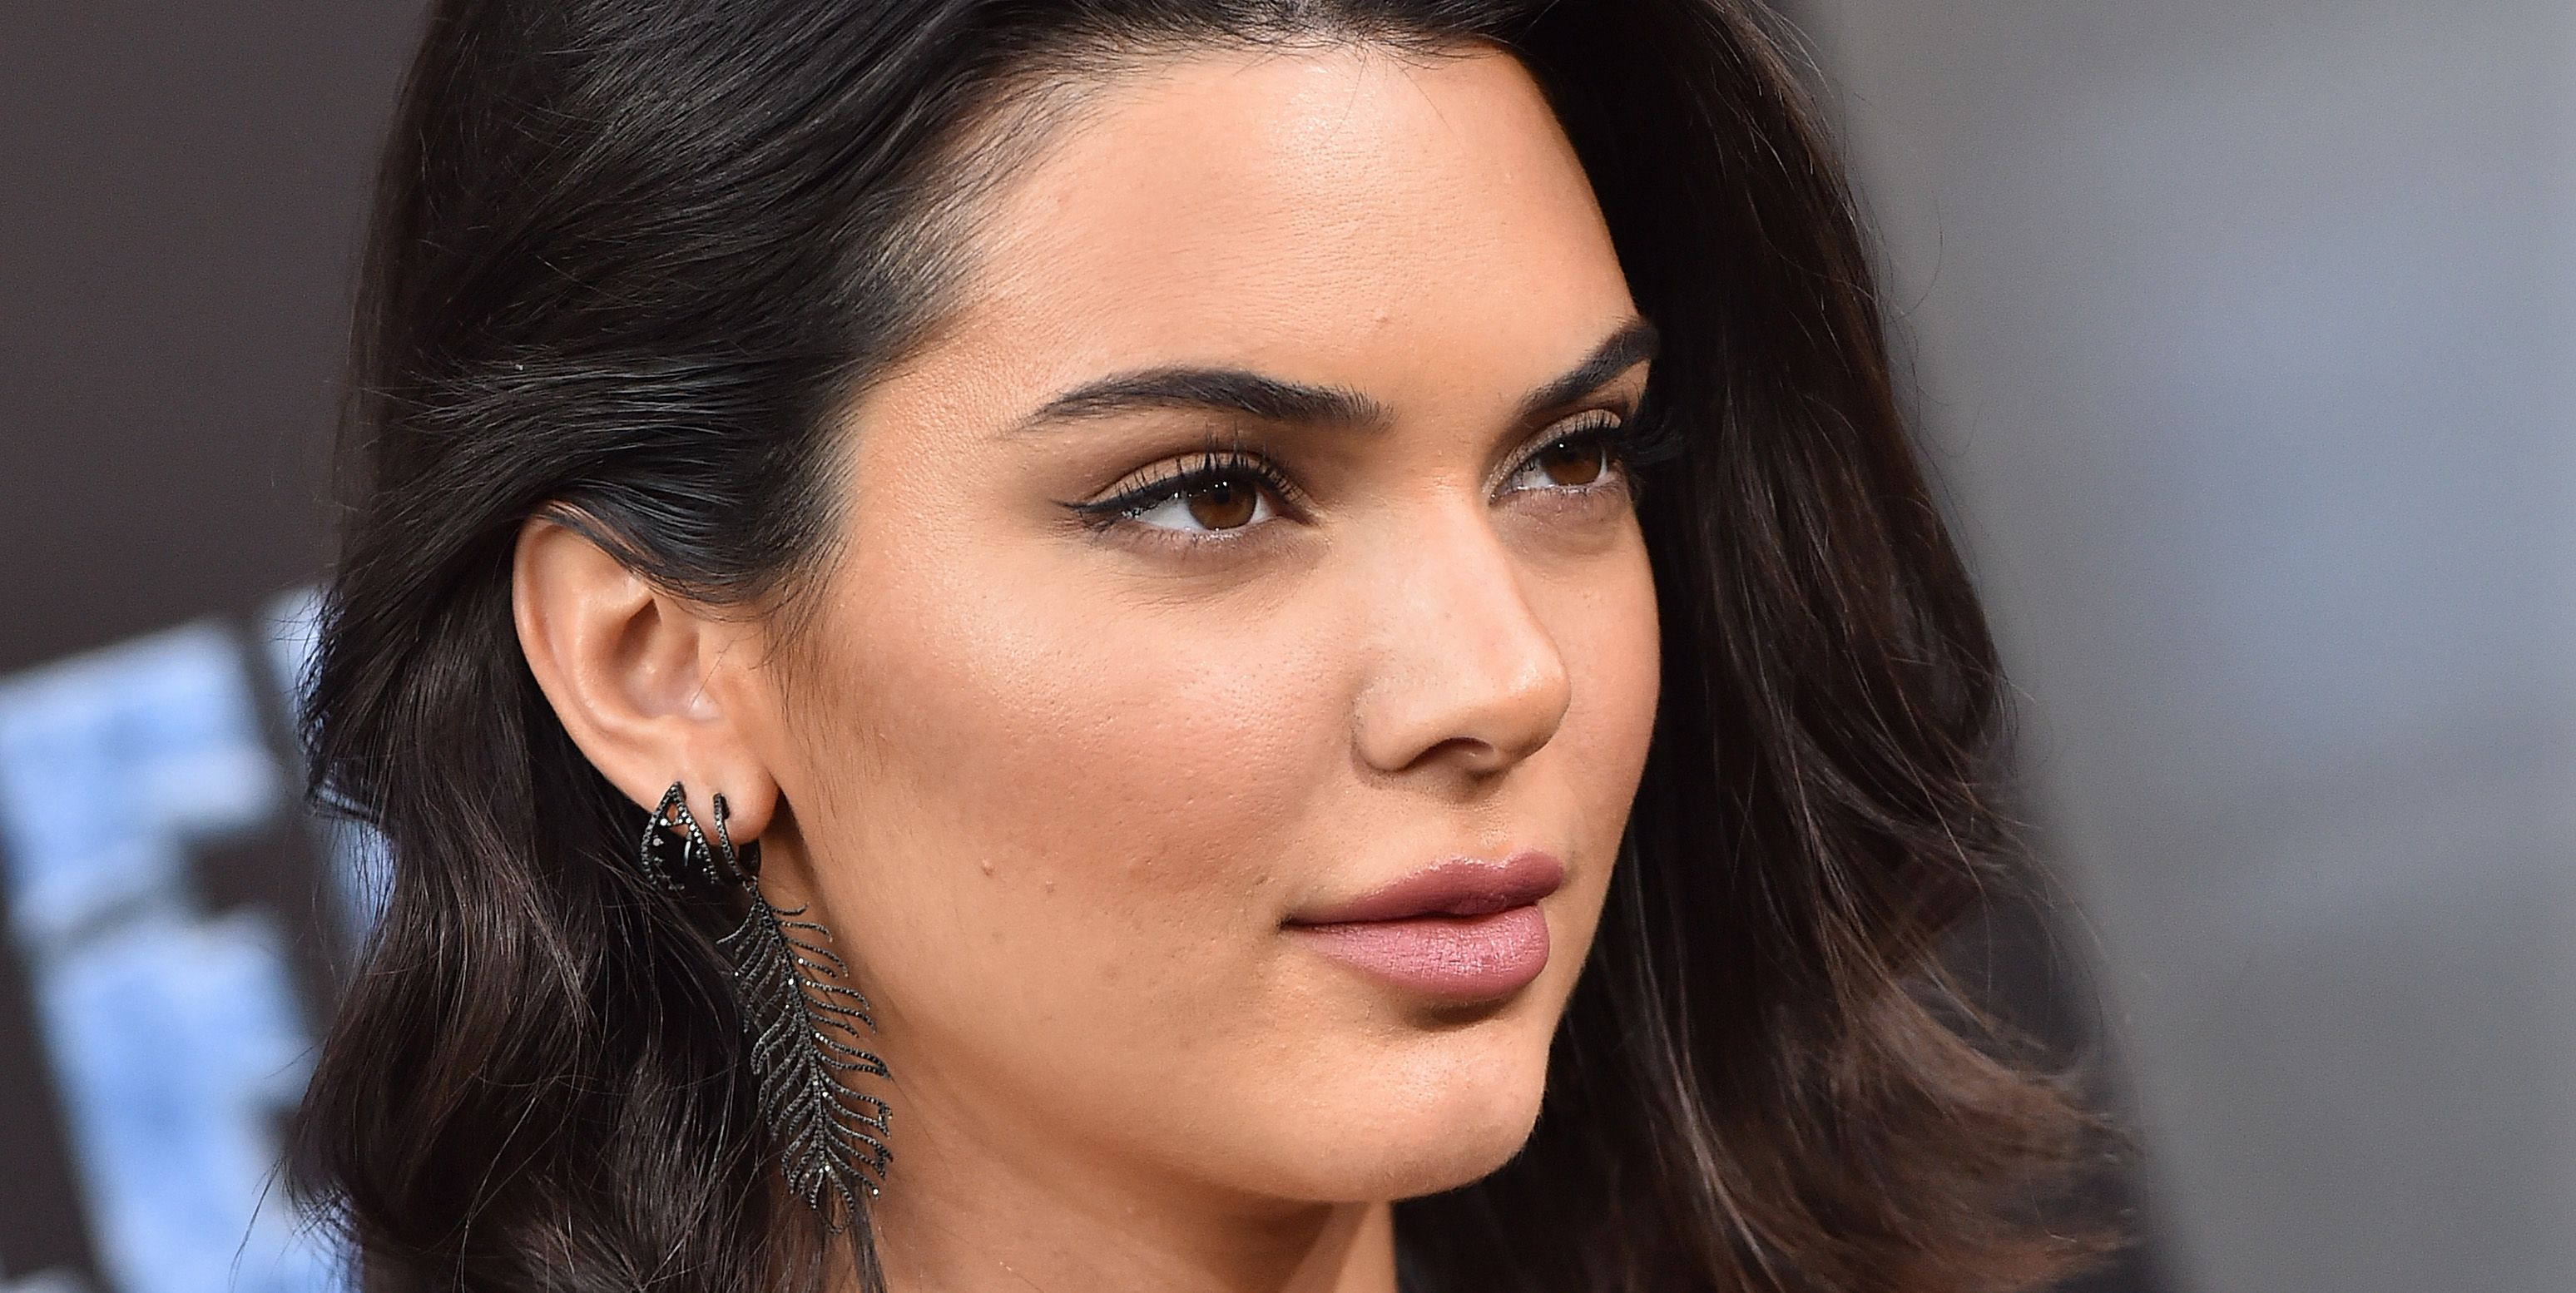 Kendall Jenner Is In Hot Water For Her... Emoji Choice